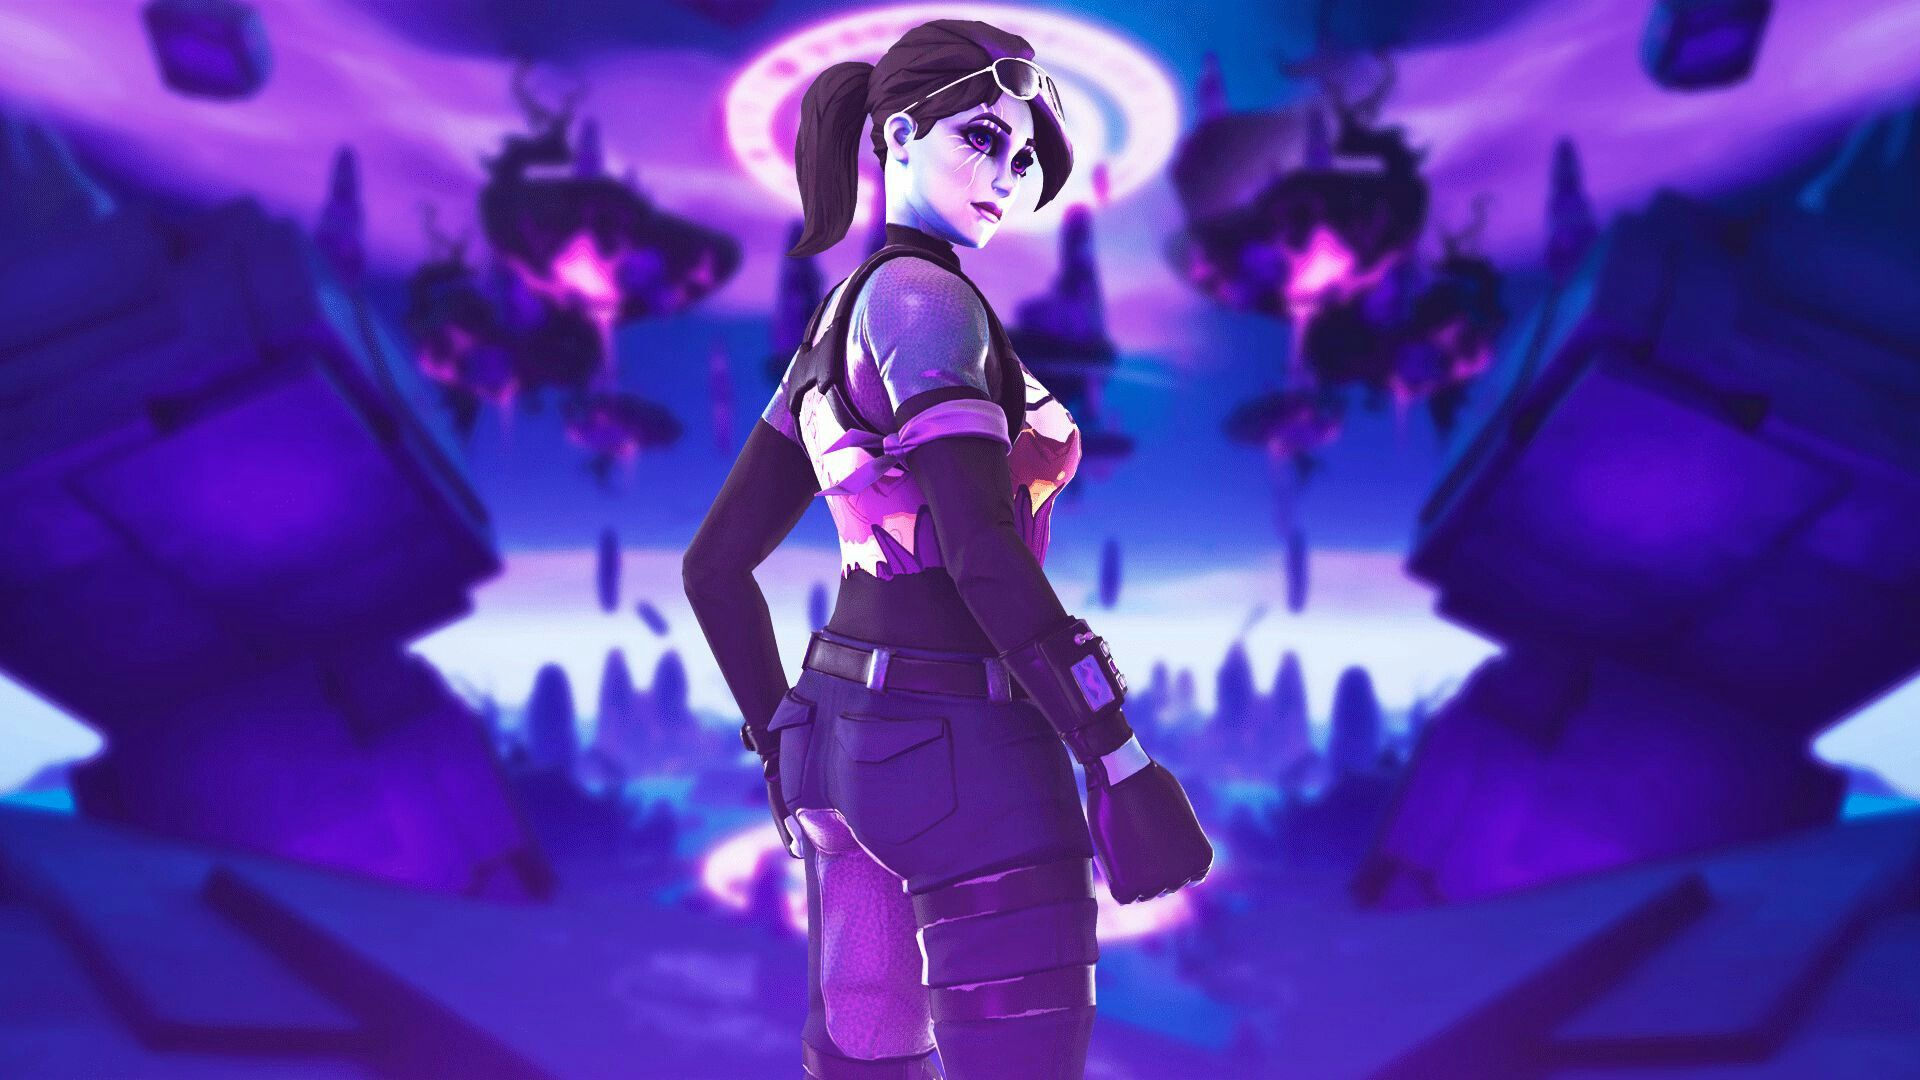 Fortnite Best Gaming Wallpapers Gaming Wallpapers Background Images Wallpapers